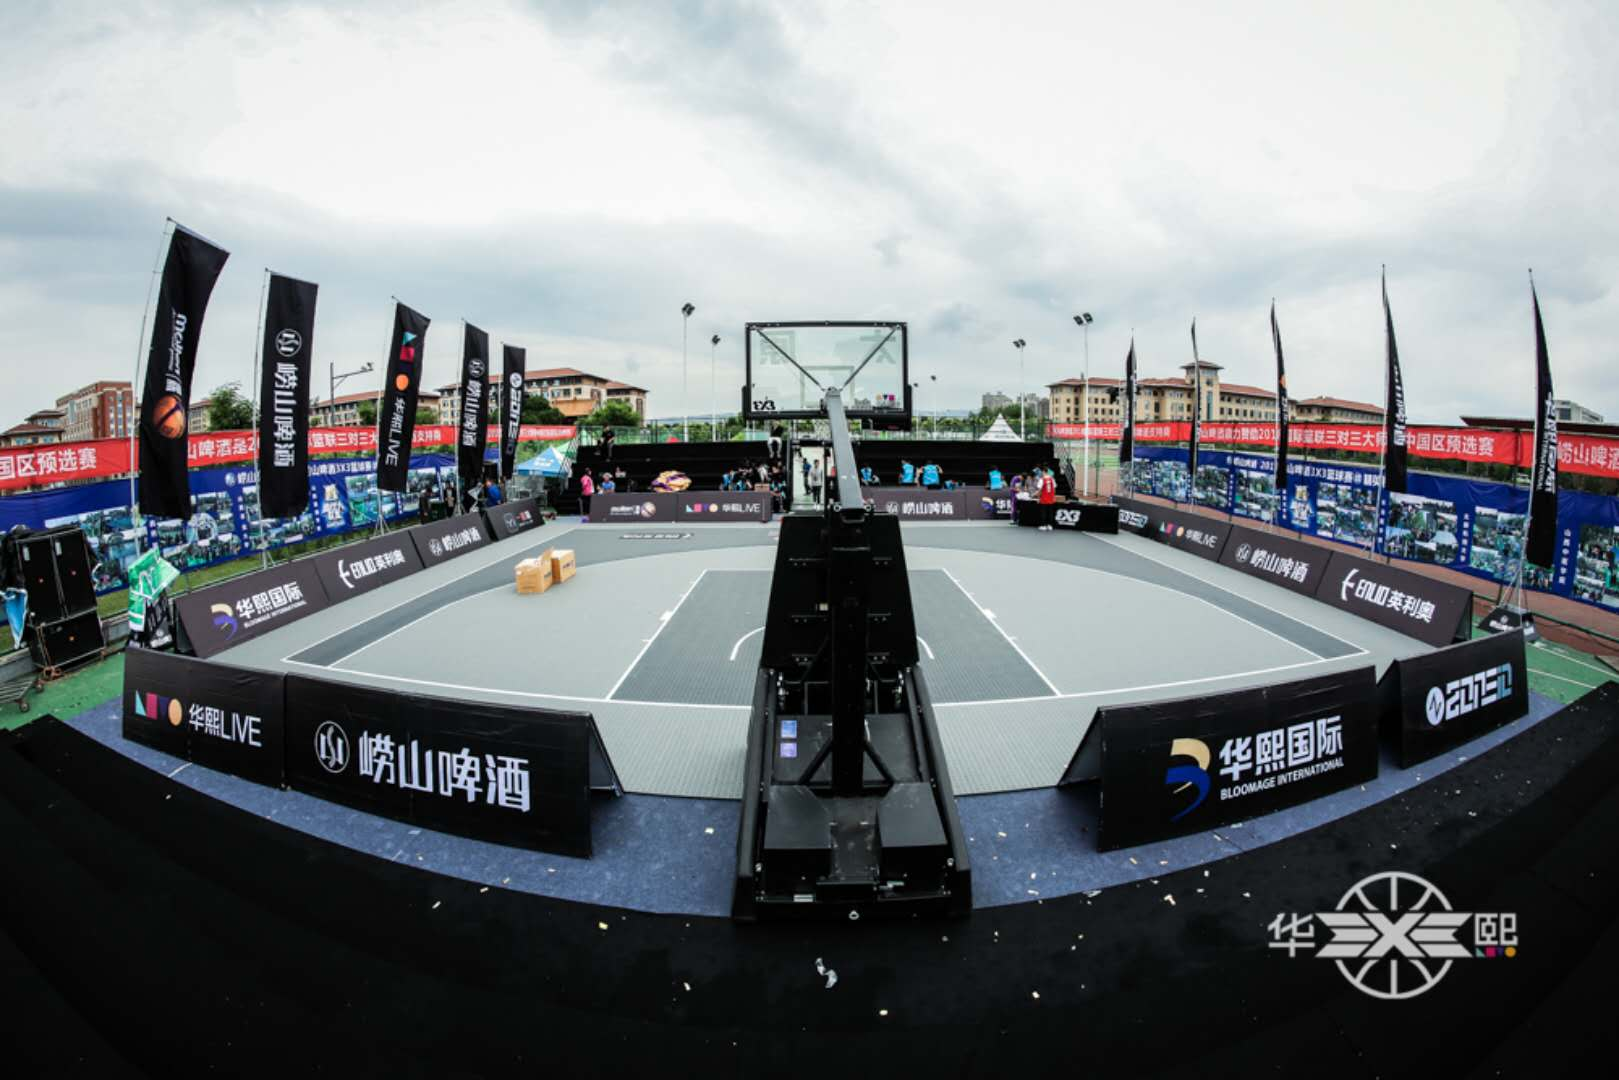 FIBA 3x3 Basketball court mat